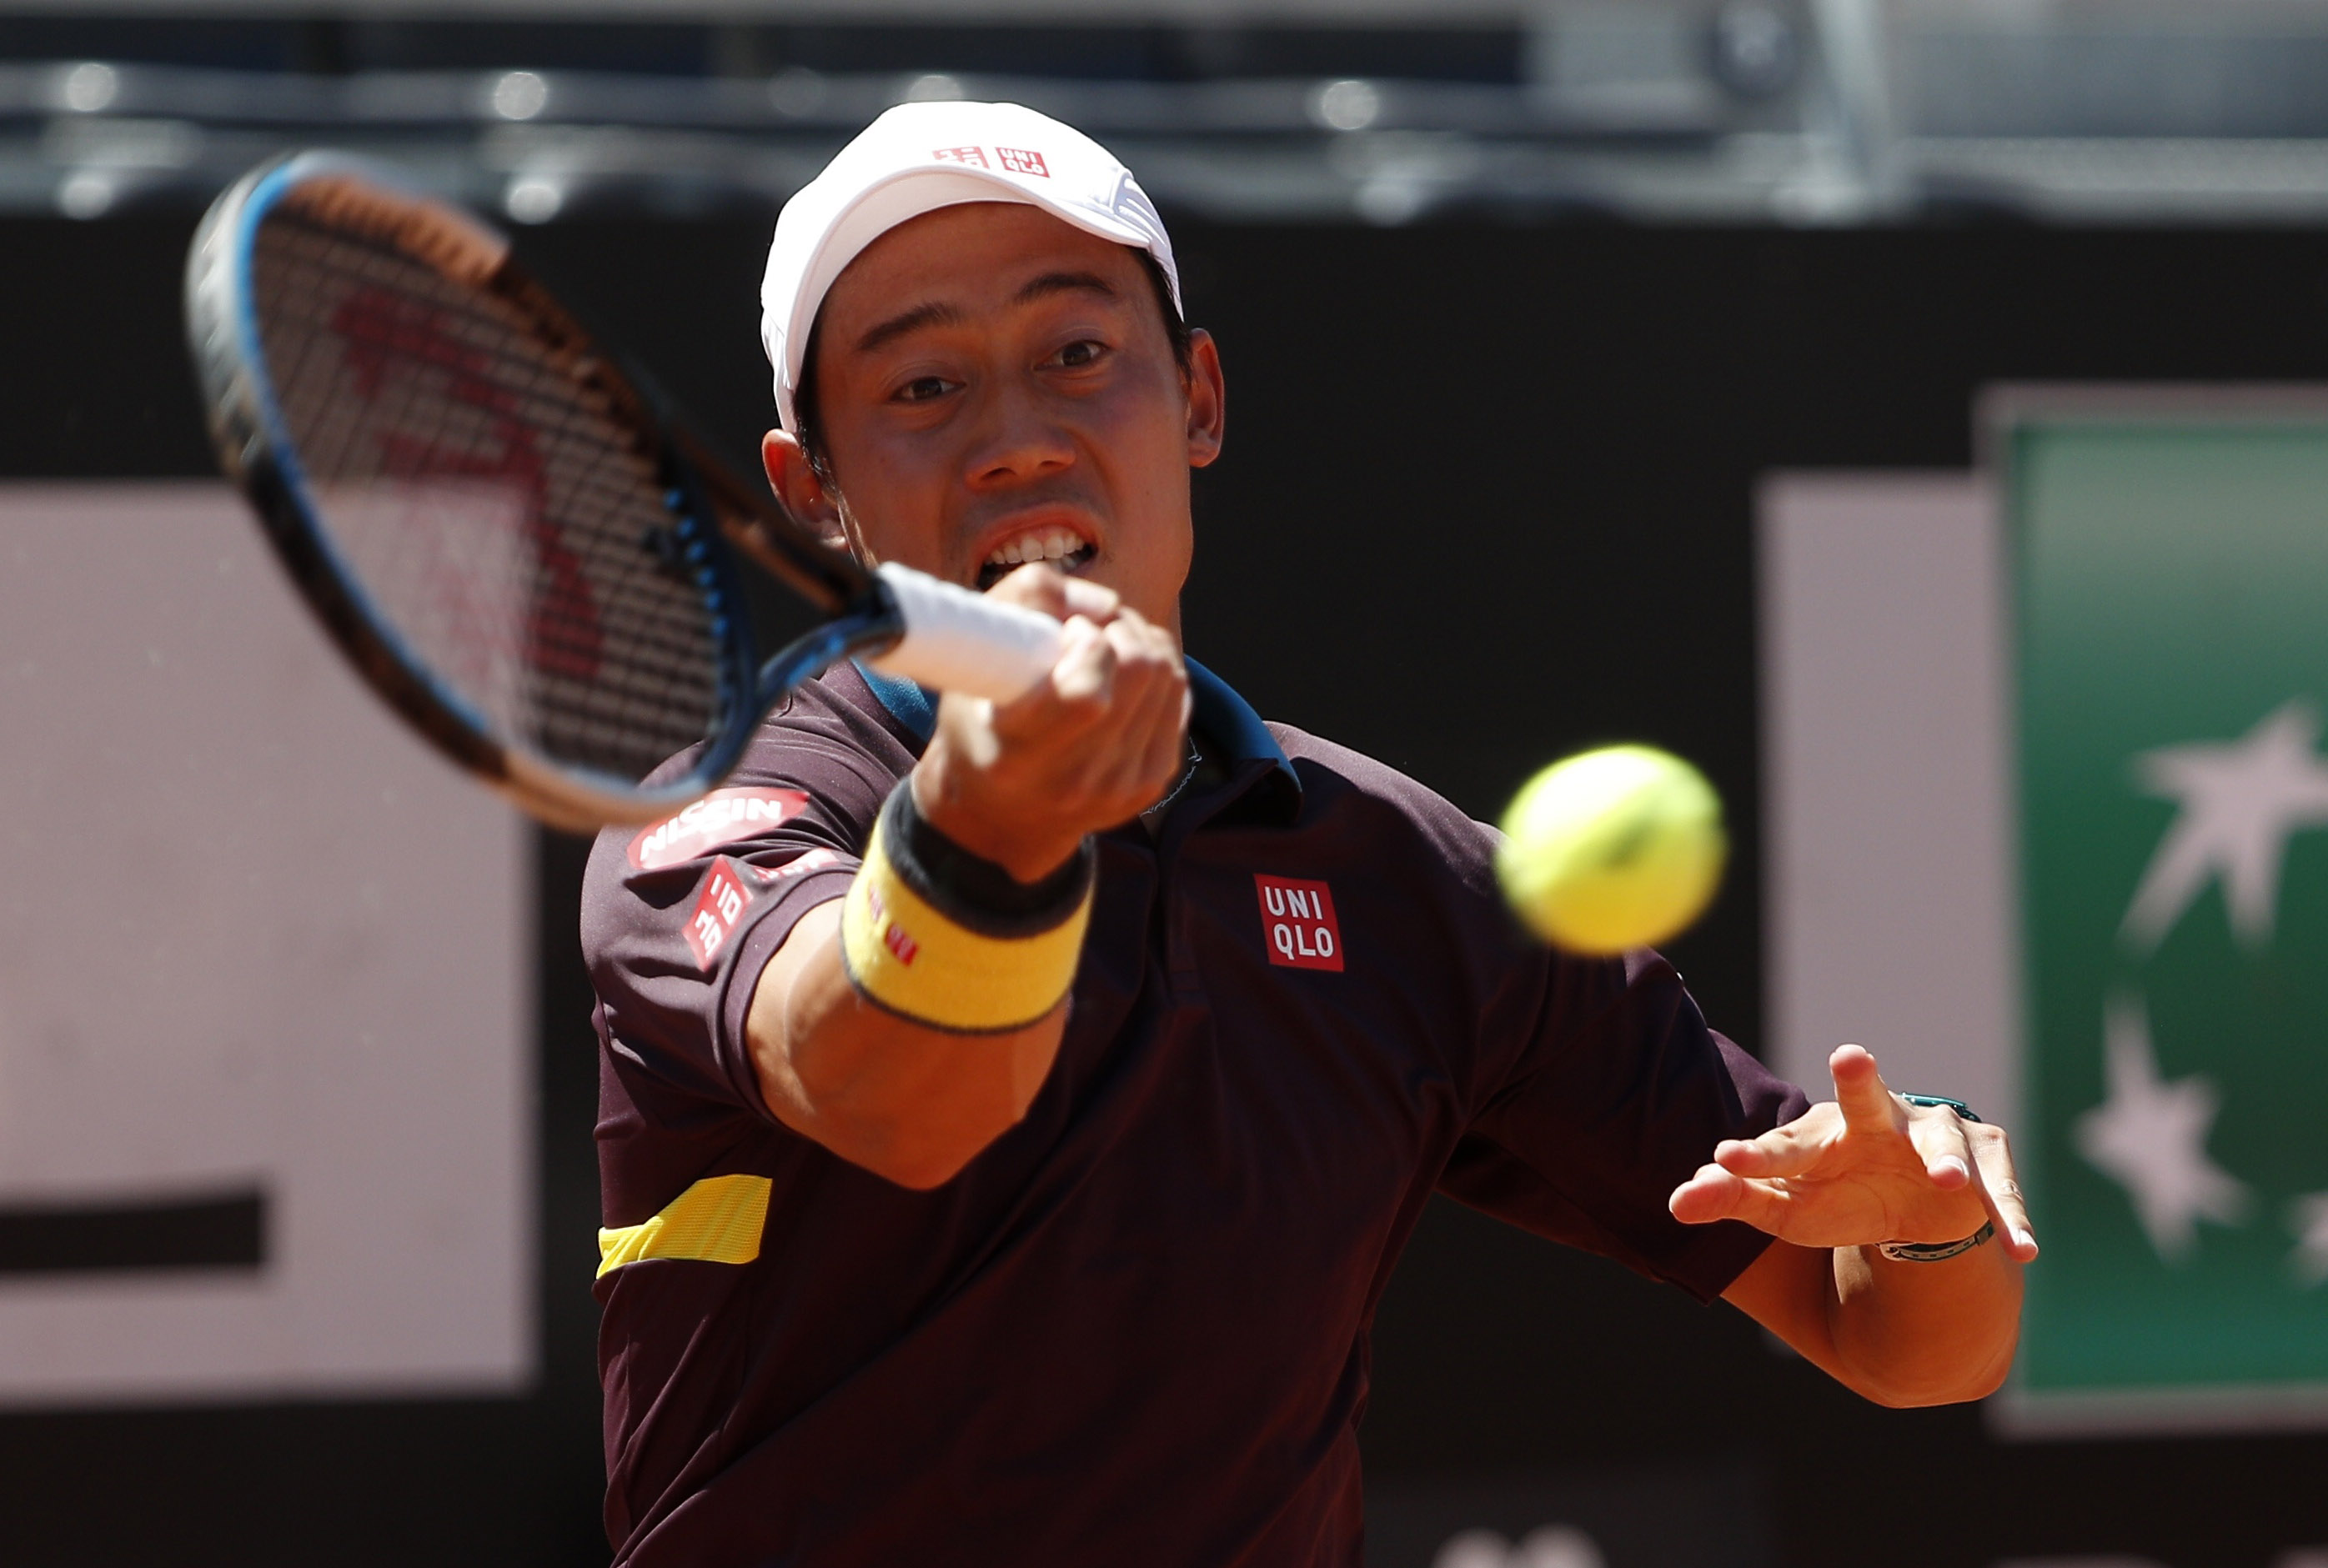 Tennis - ATP Masters 1000 - Italian Open - Foro Italico, Rome, Italy - May 10, 2021  Japan's Kei Nishikori in action during his first round match against Italy's Fabio Fognini REUTERS/Guglielmo Mangiapane